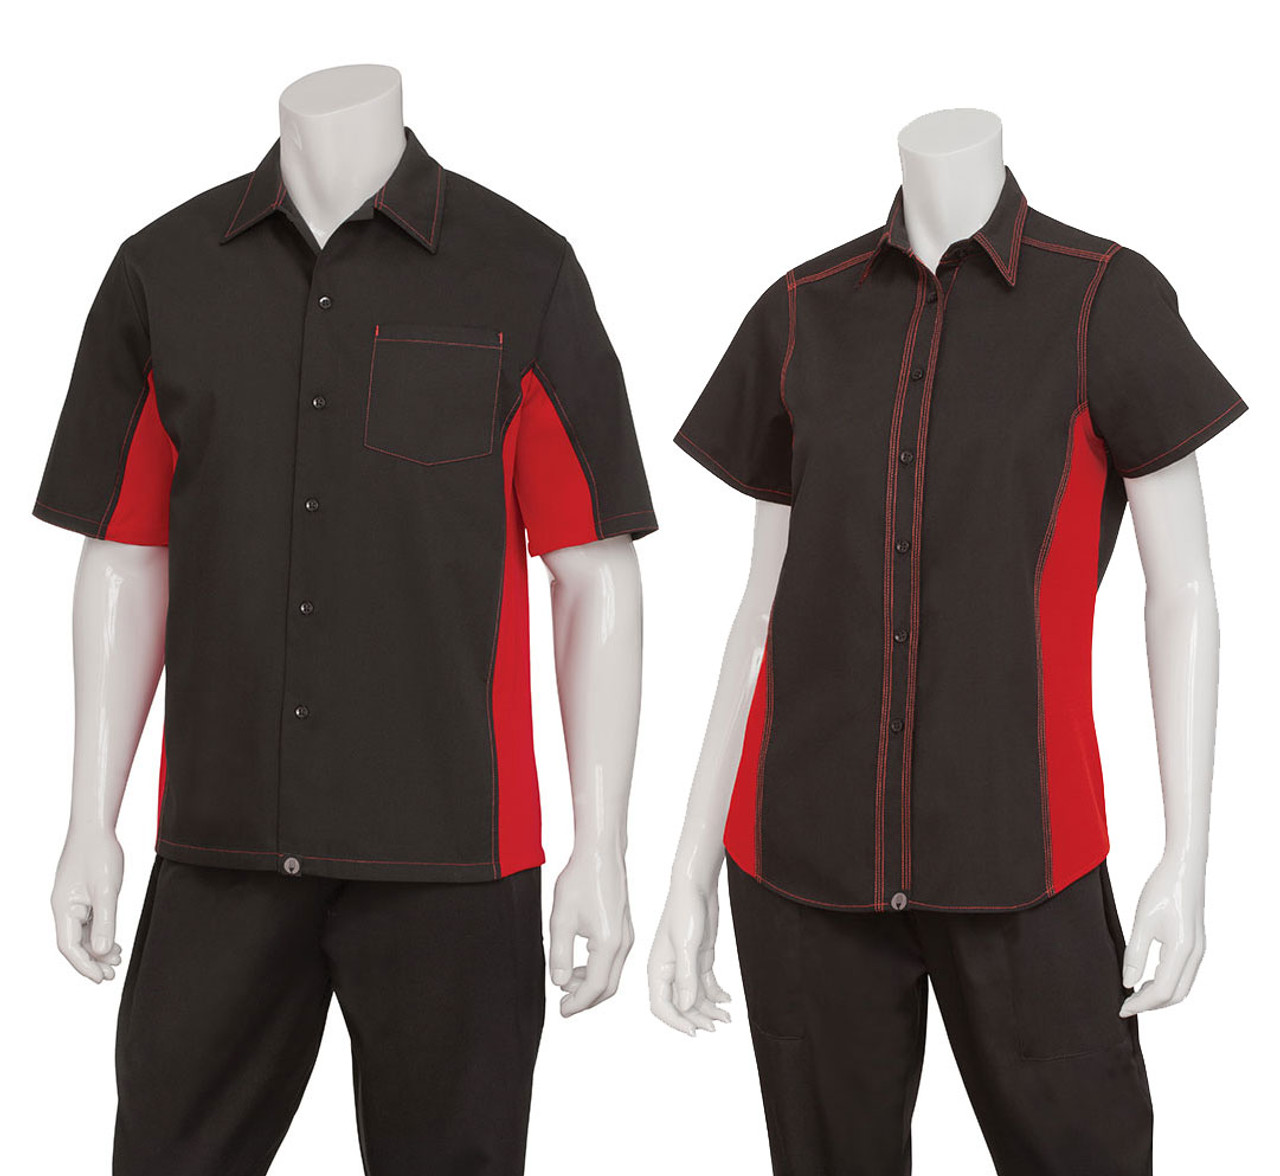 Men and women sizes with red